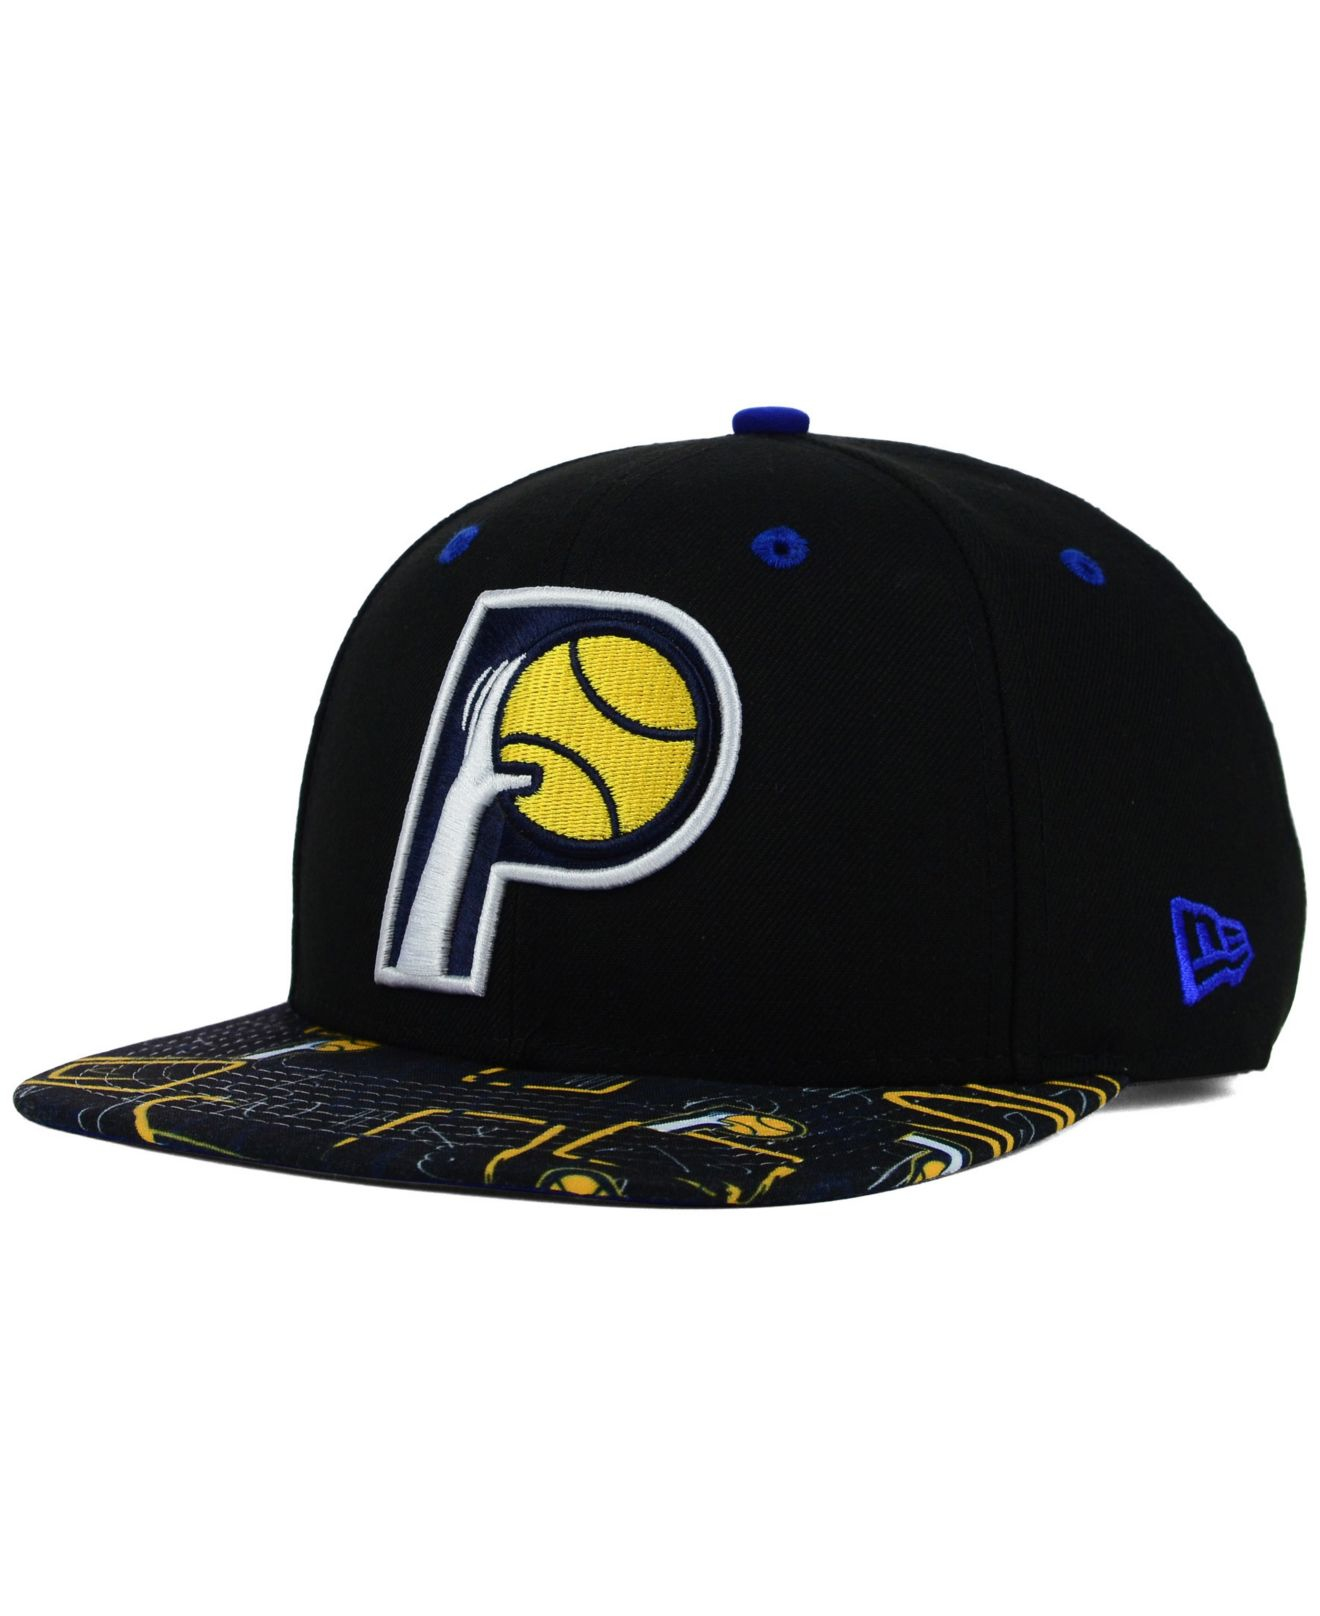 superior quality baf8e 31cd4 Lyst - KTZ Indiana Pacers Hwc Tag It 9fifty Snapback Cap in Black ...